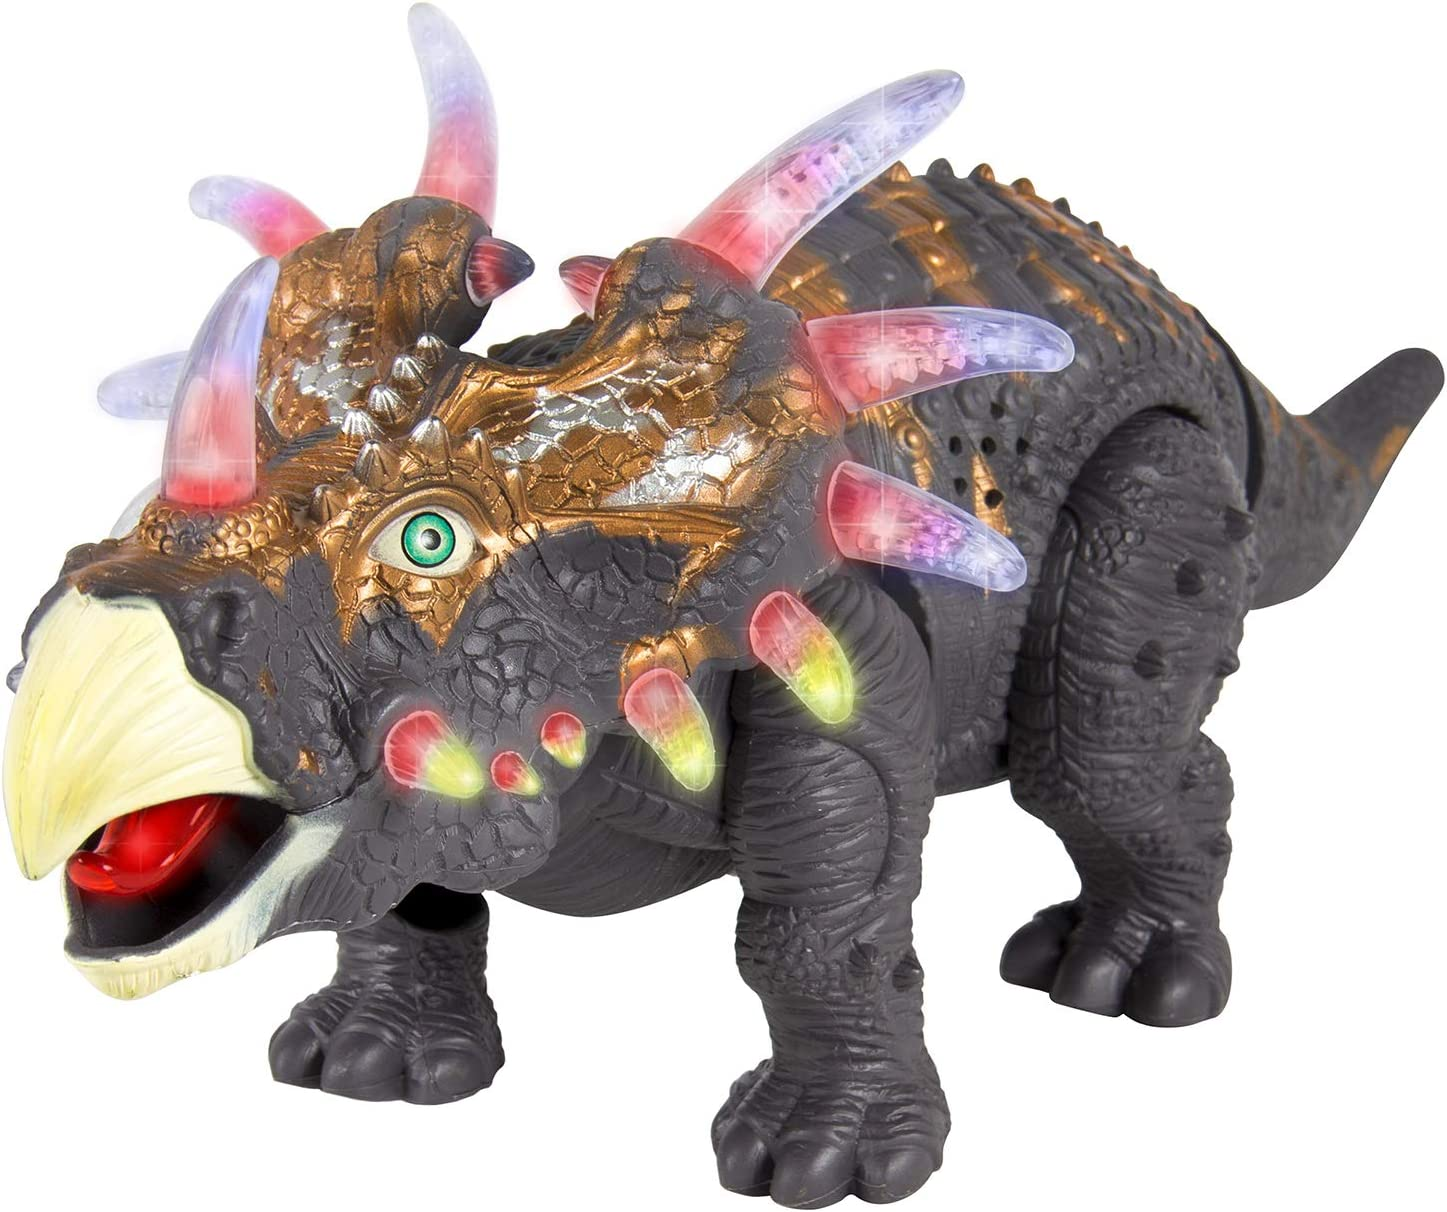 Jurassic World Triceratops Dinosaur Action Figure with Sound and Light-Up Eyes